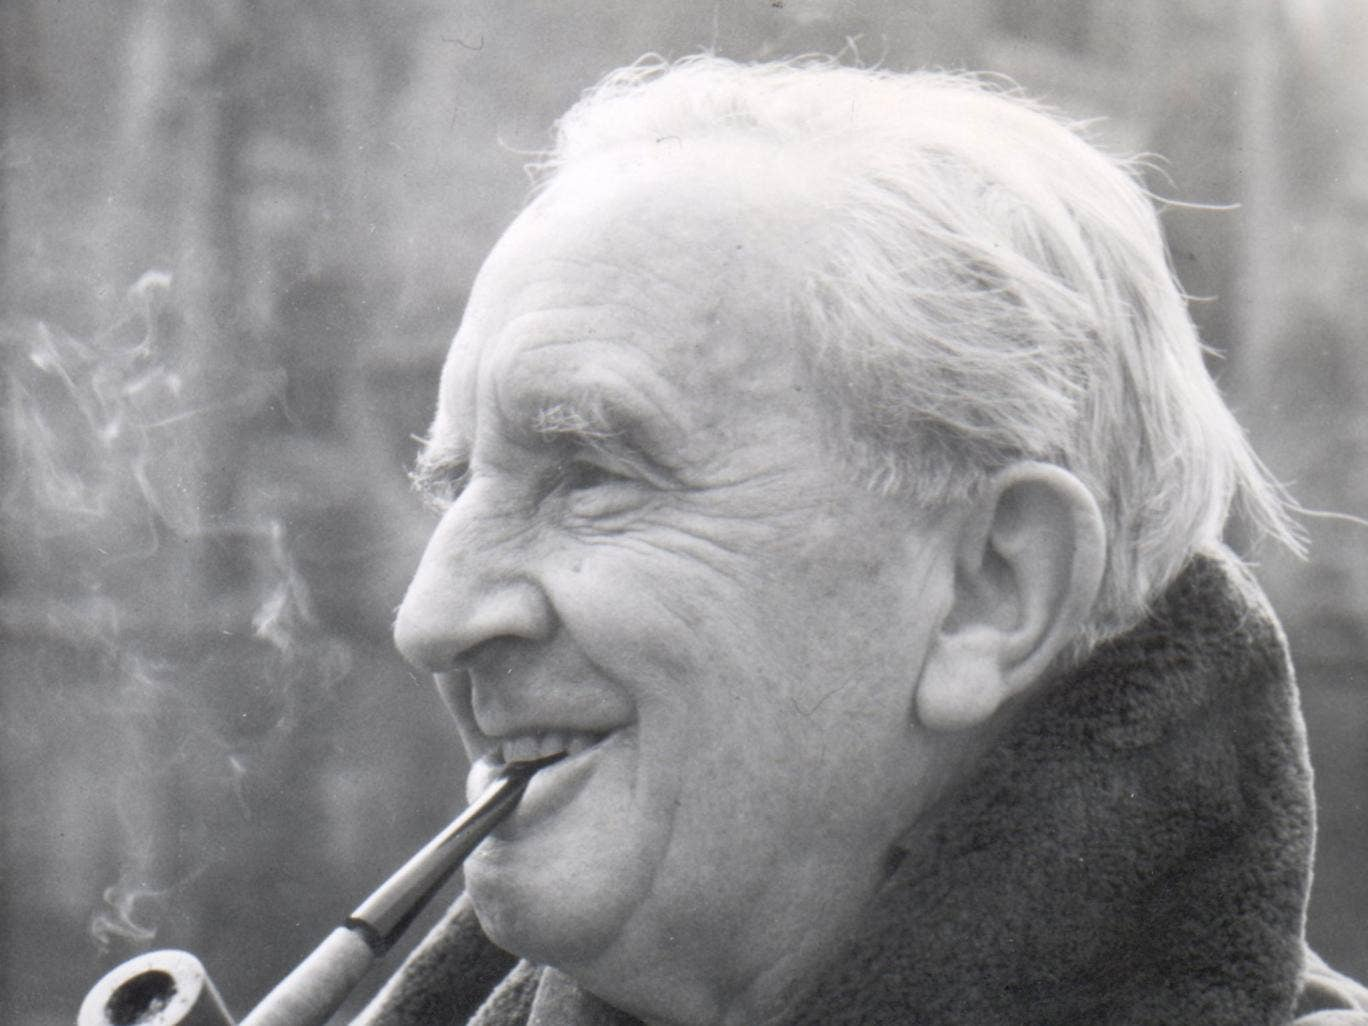 Tolkien was Professor of Anglo-Saxon at Oxford University